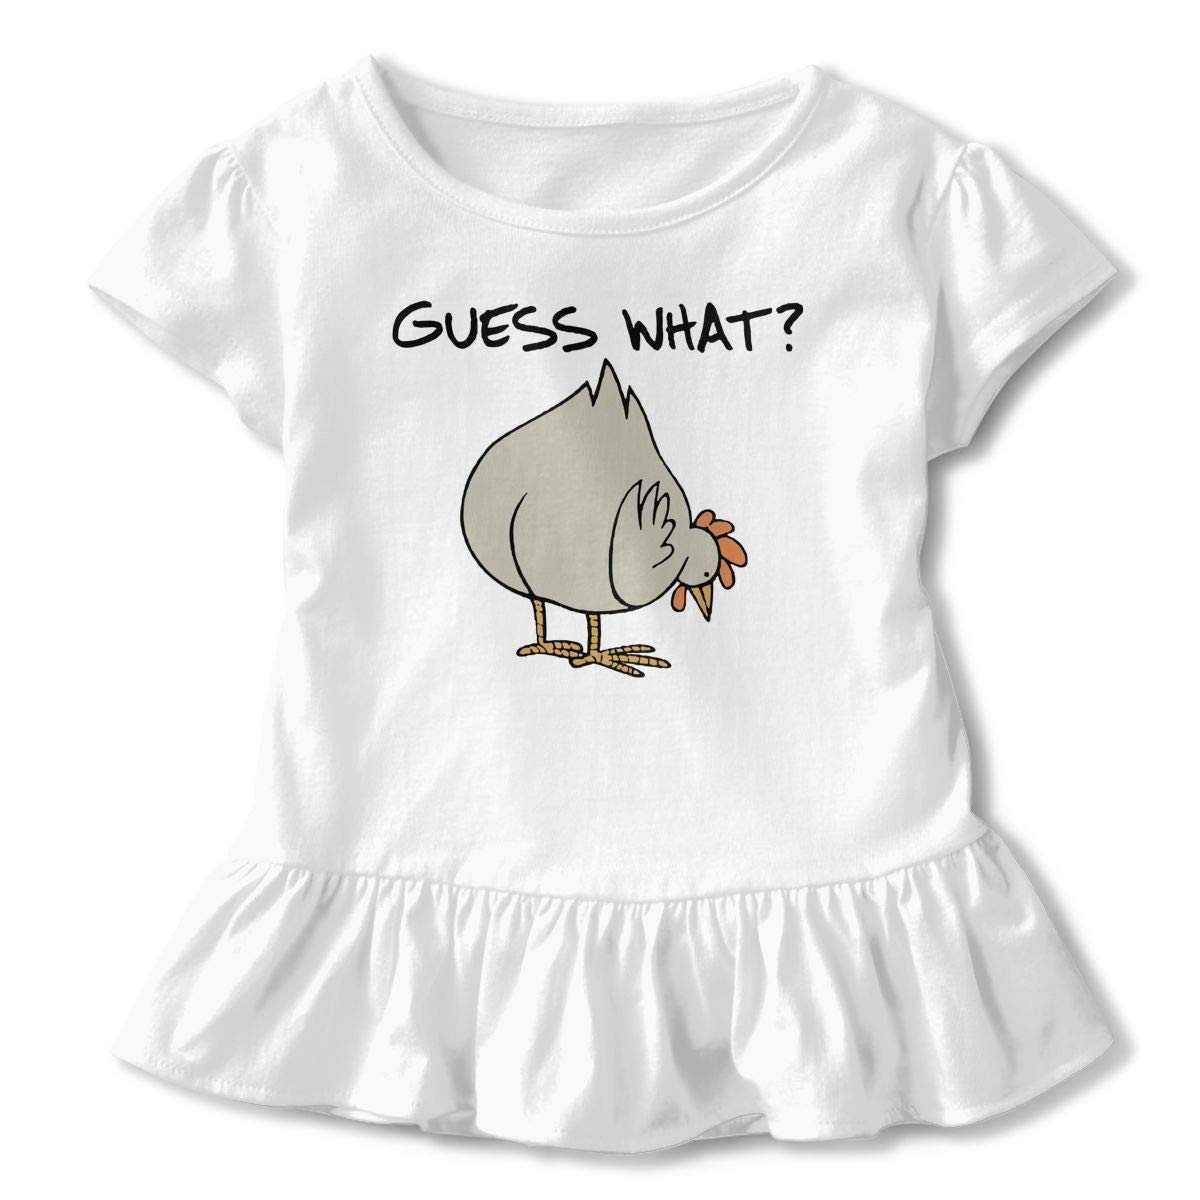 Guess What Chicken Butt Childrens Girls Short Sleeve Ruffles Shirt T-Shirt for 2-6 Toddlers